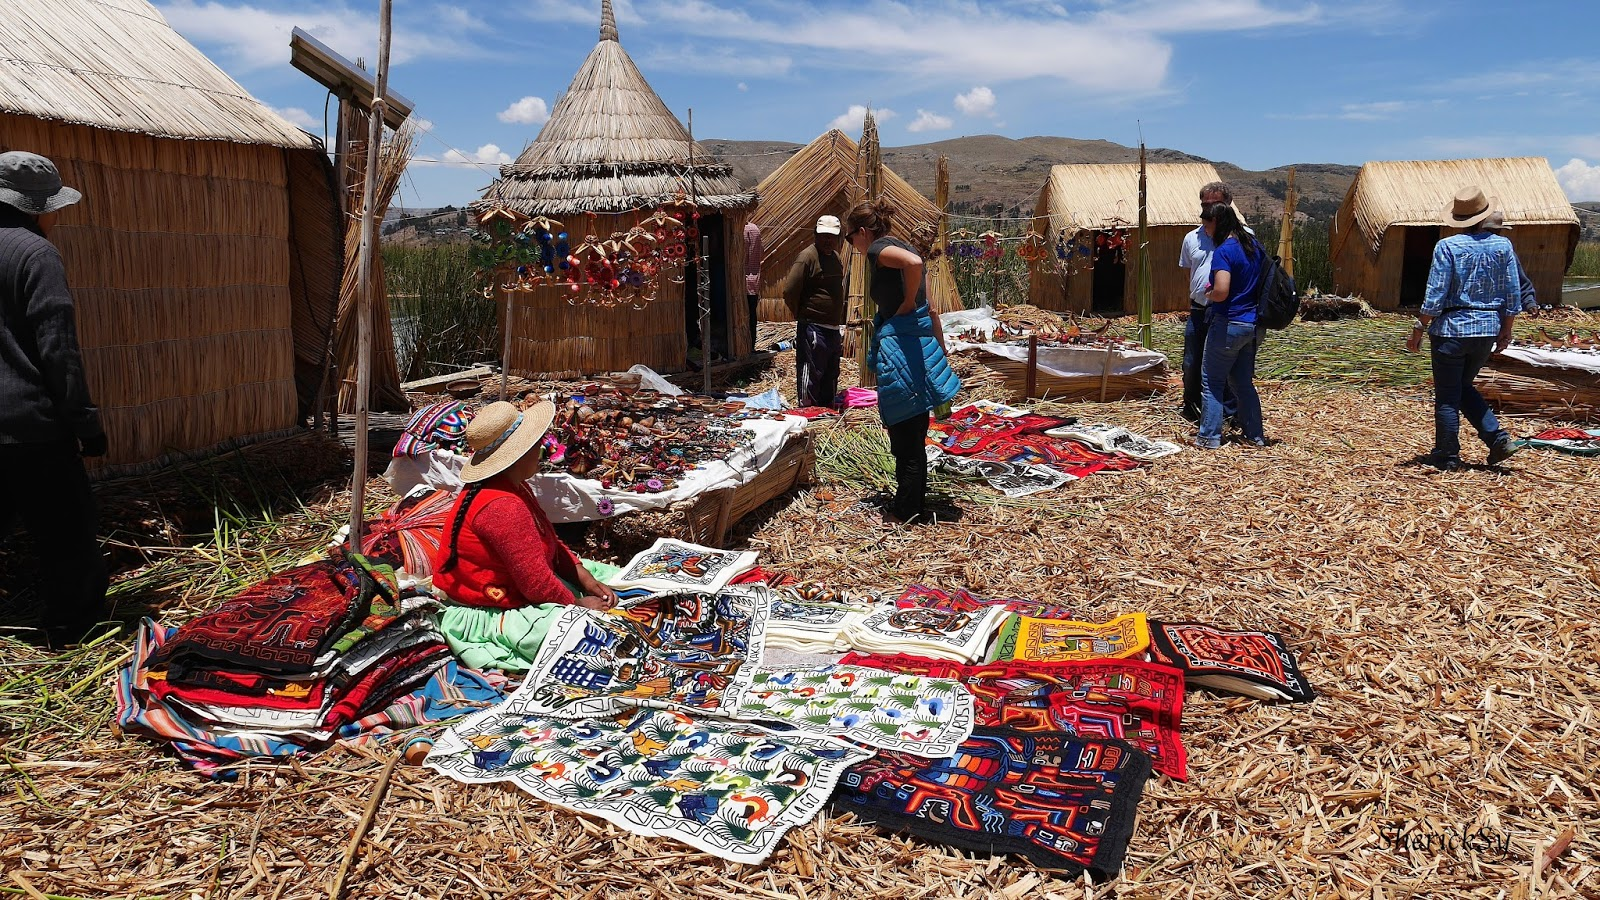 Shopping at the Floating Islands of Uros, Lake Titicaca, Peru